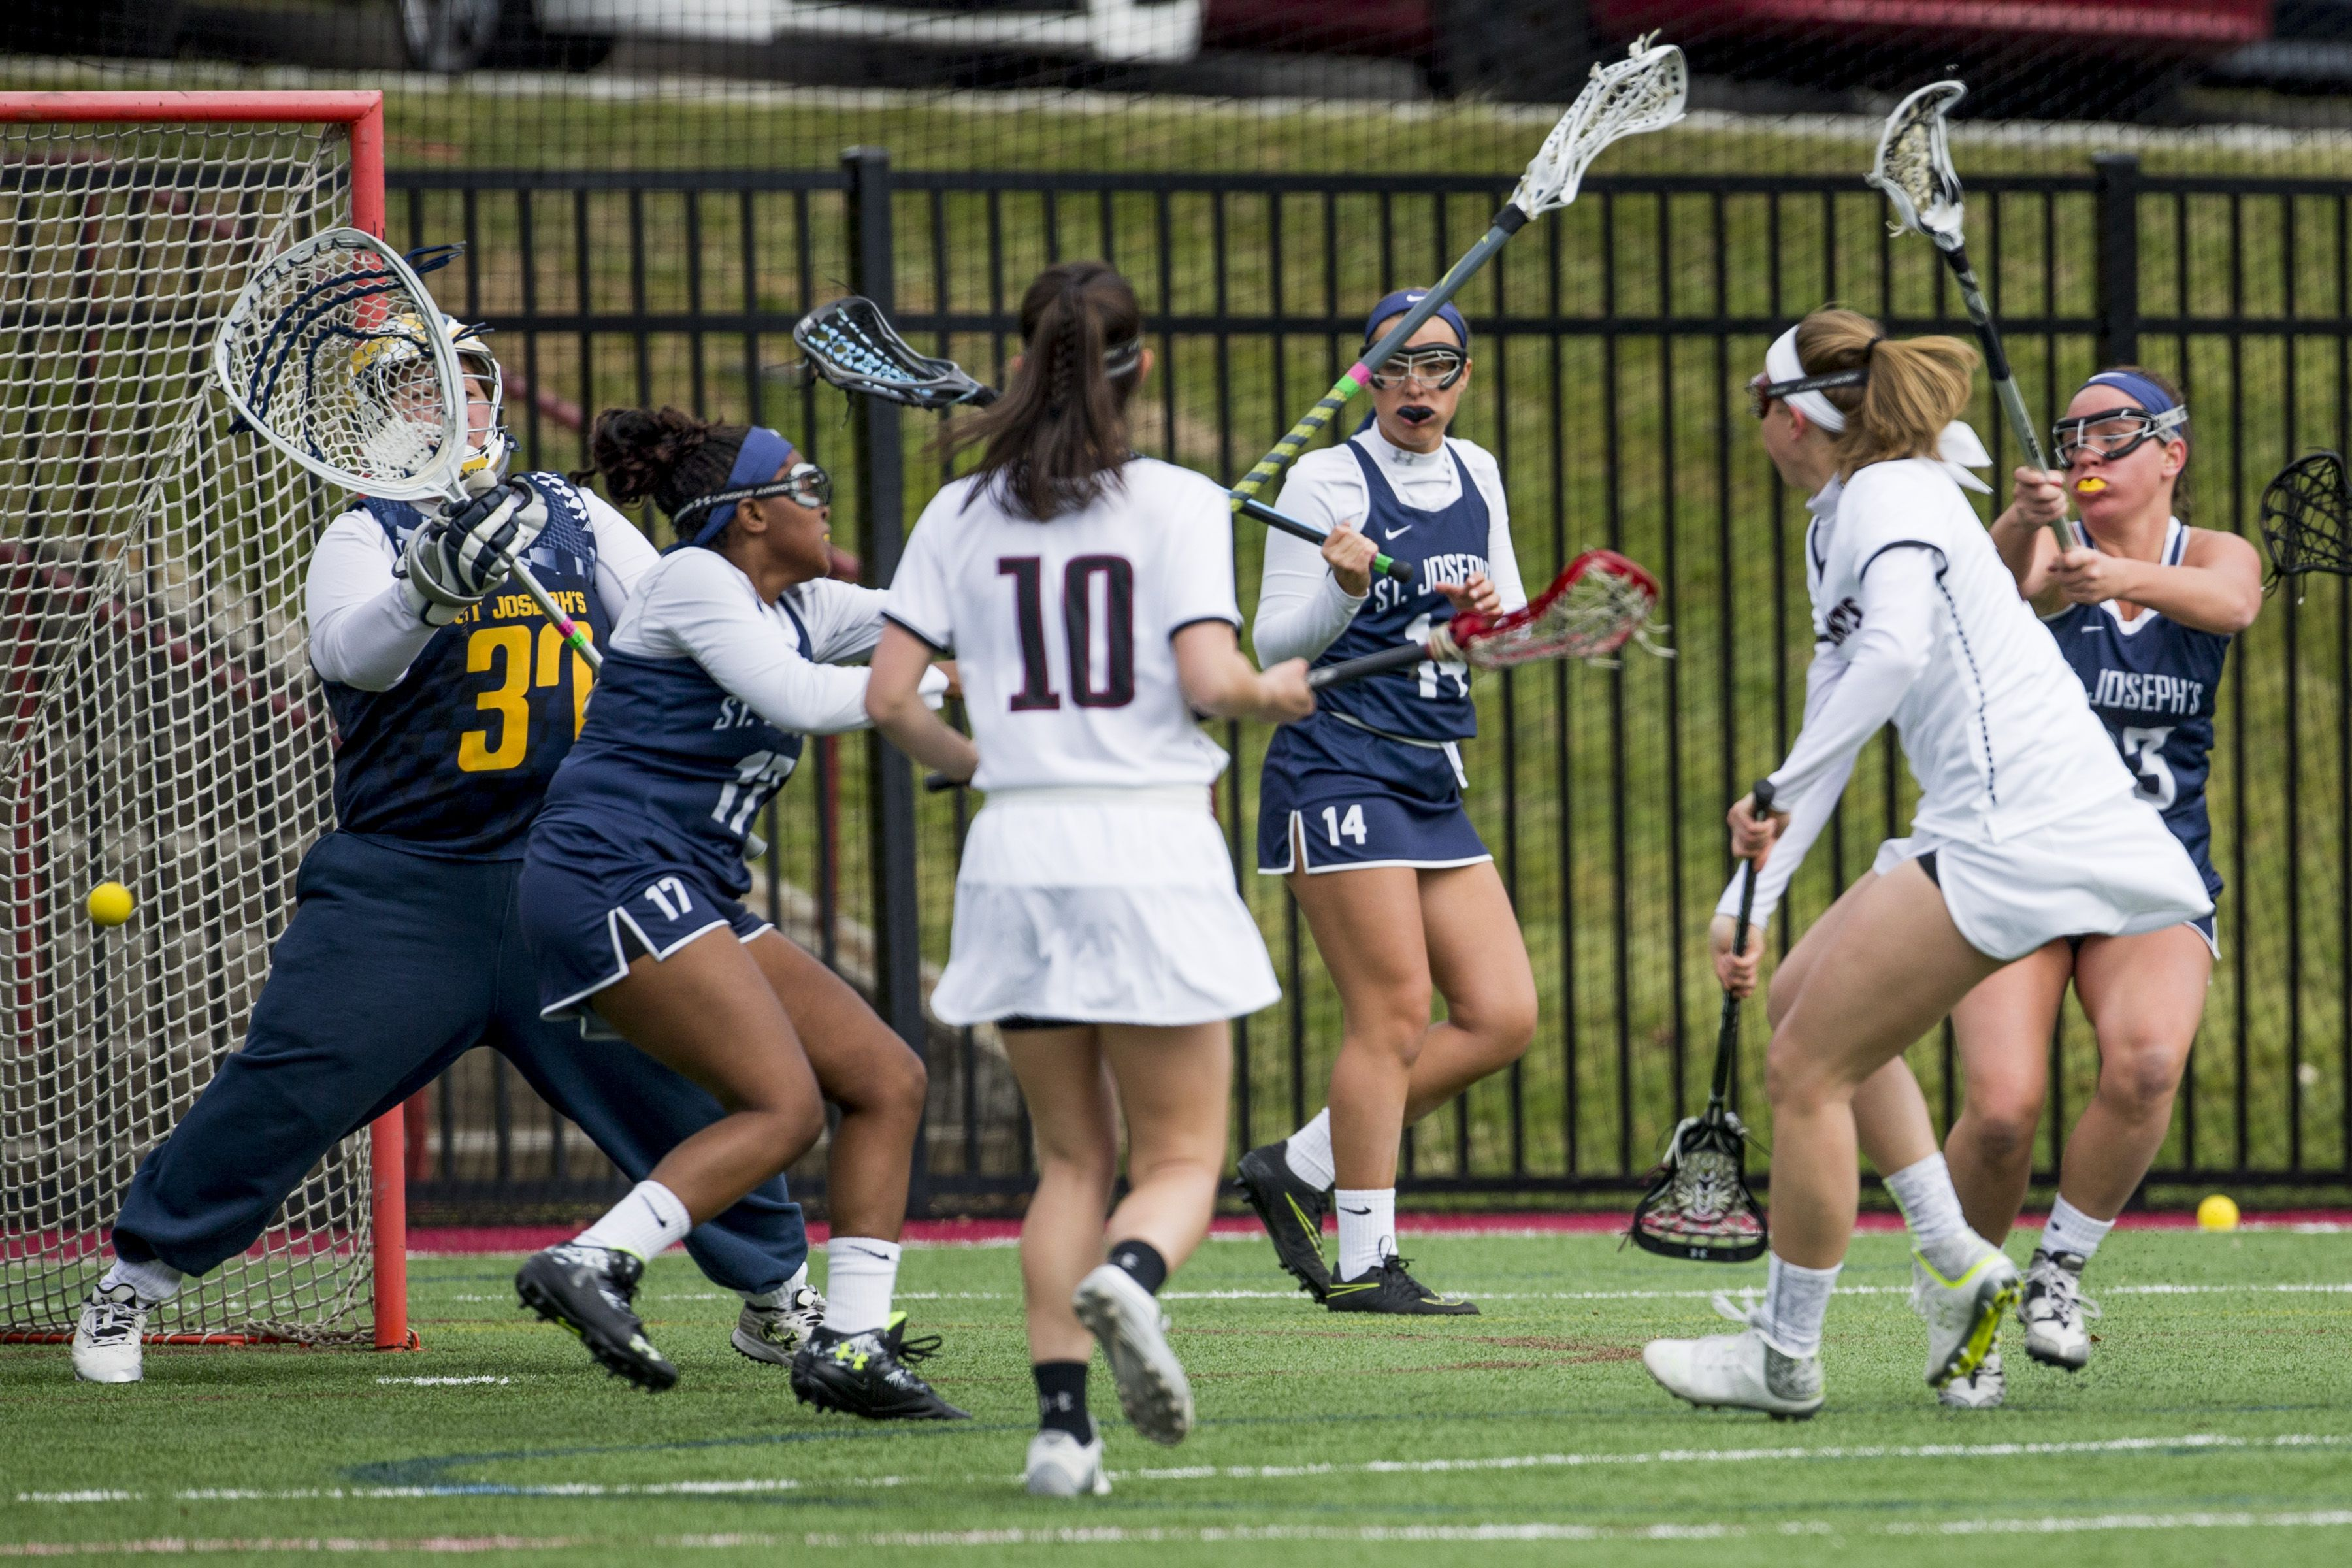 Womens lacrosse field diagram positions for sexual health